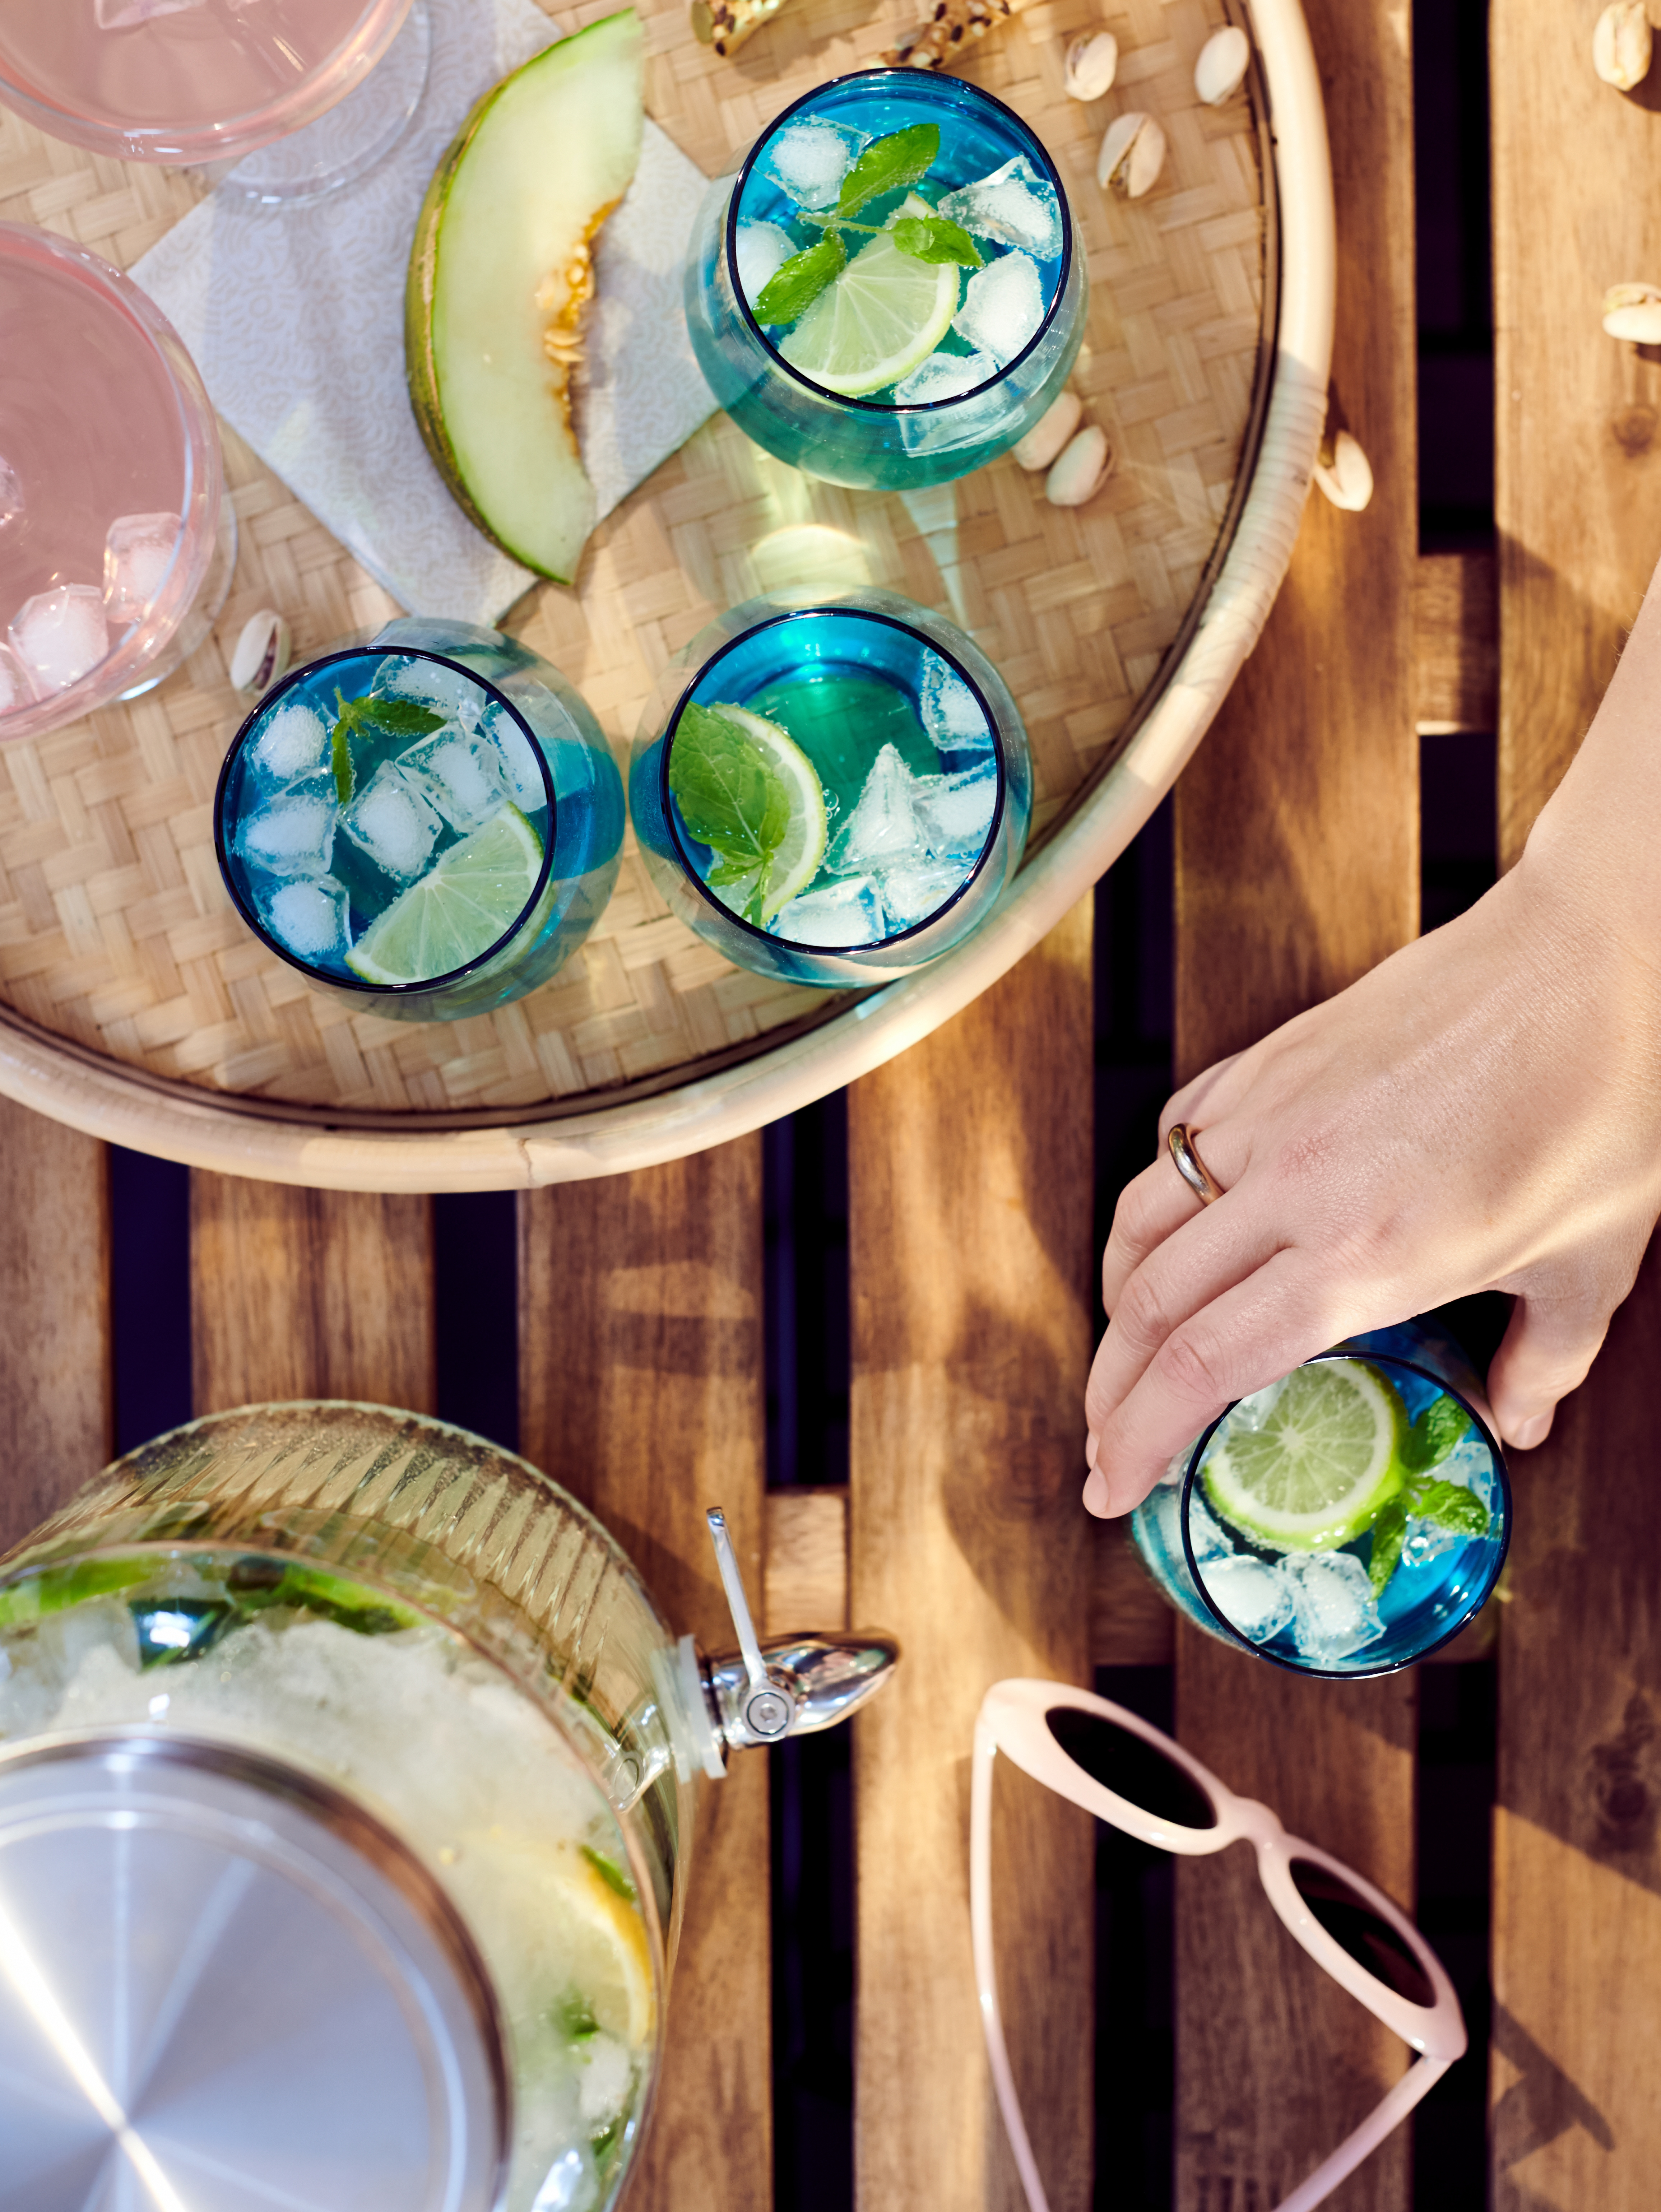 A bird's-eye view of a wooden outdoor tabletop holding a tray and four drinks in blue glasses.